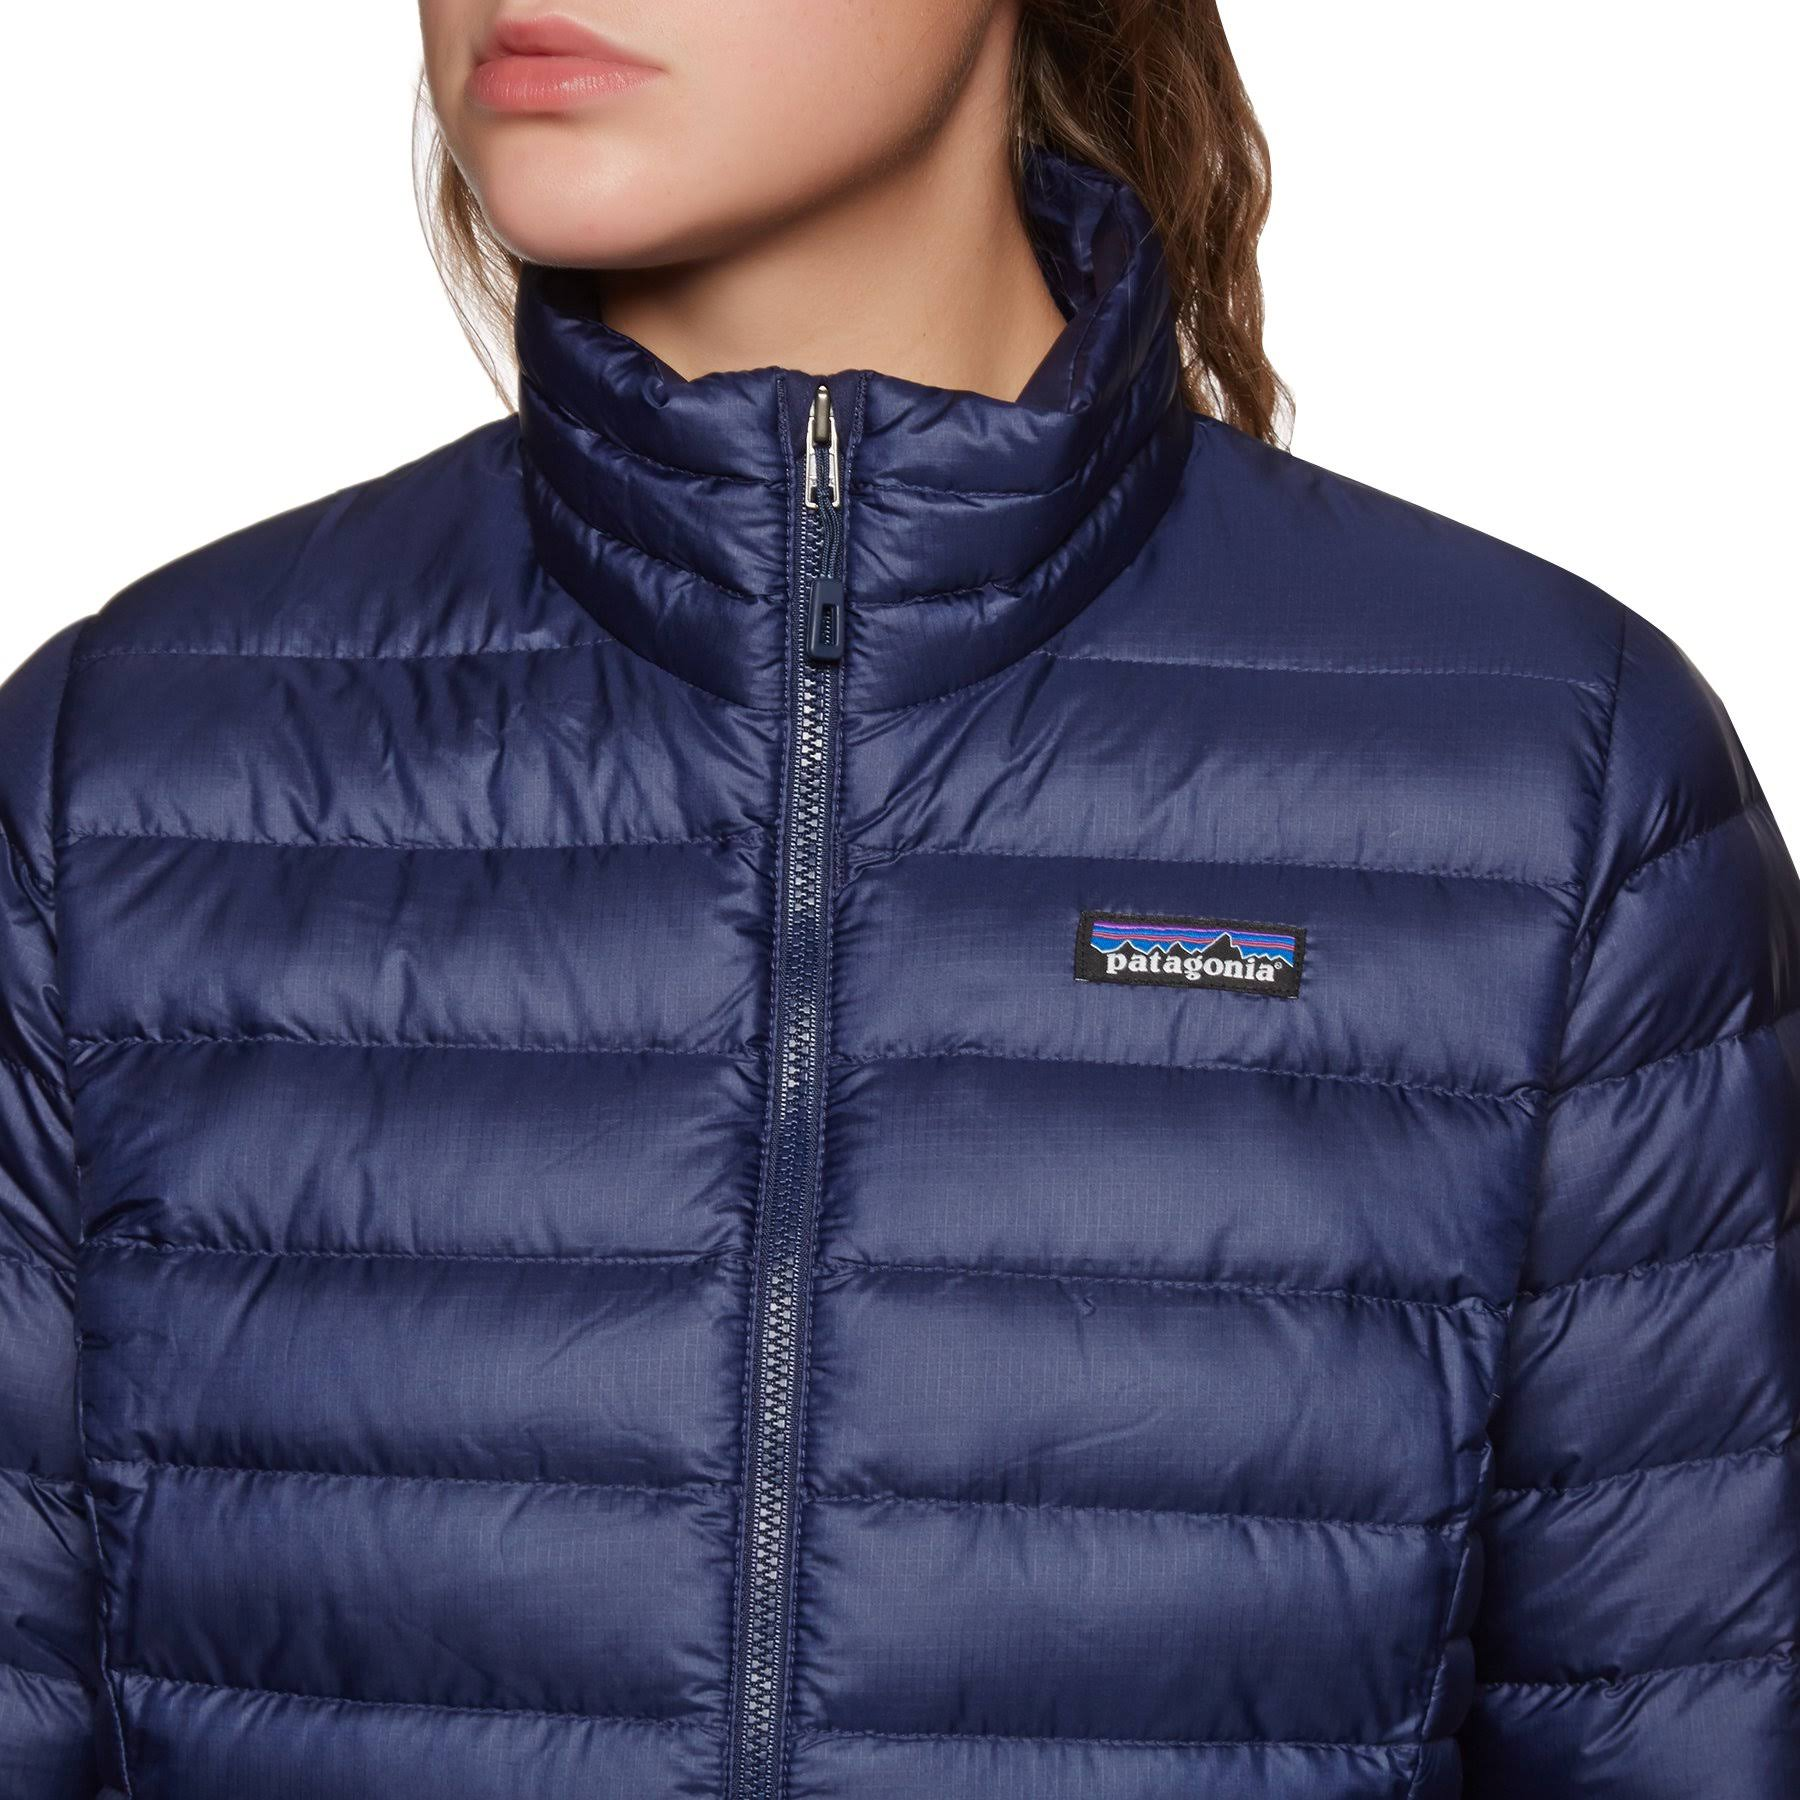 Navy Jackets Patagonia L W's Classic Sweater Down nZxnI